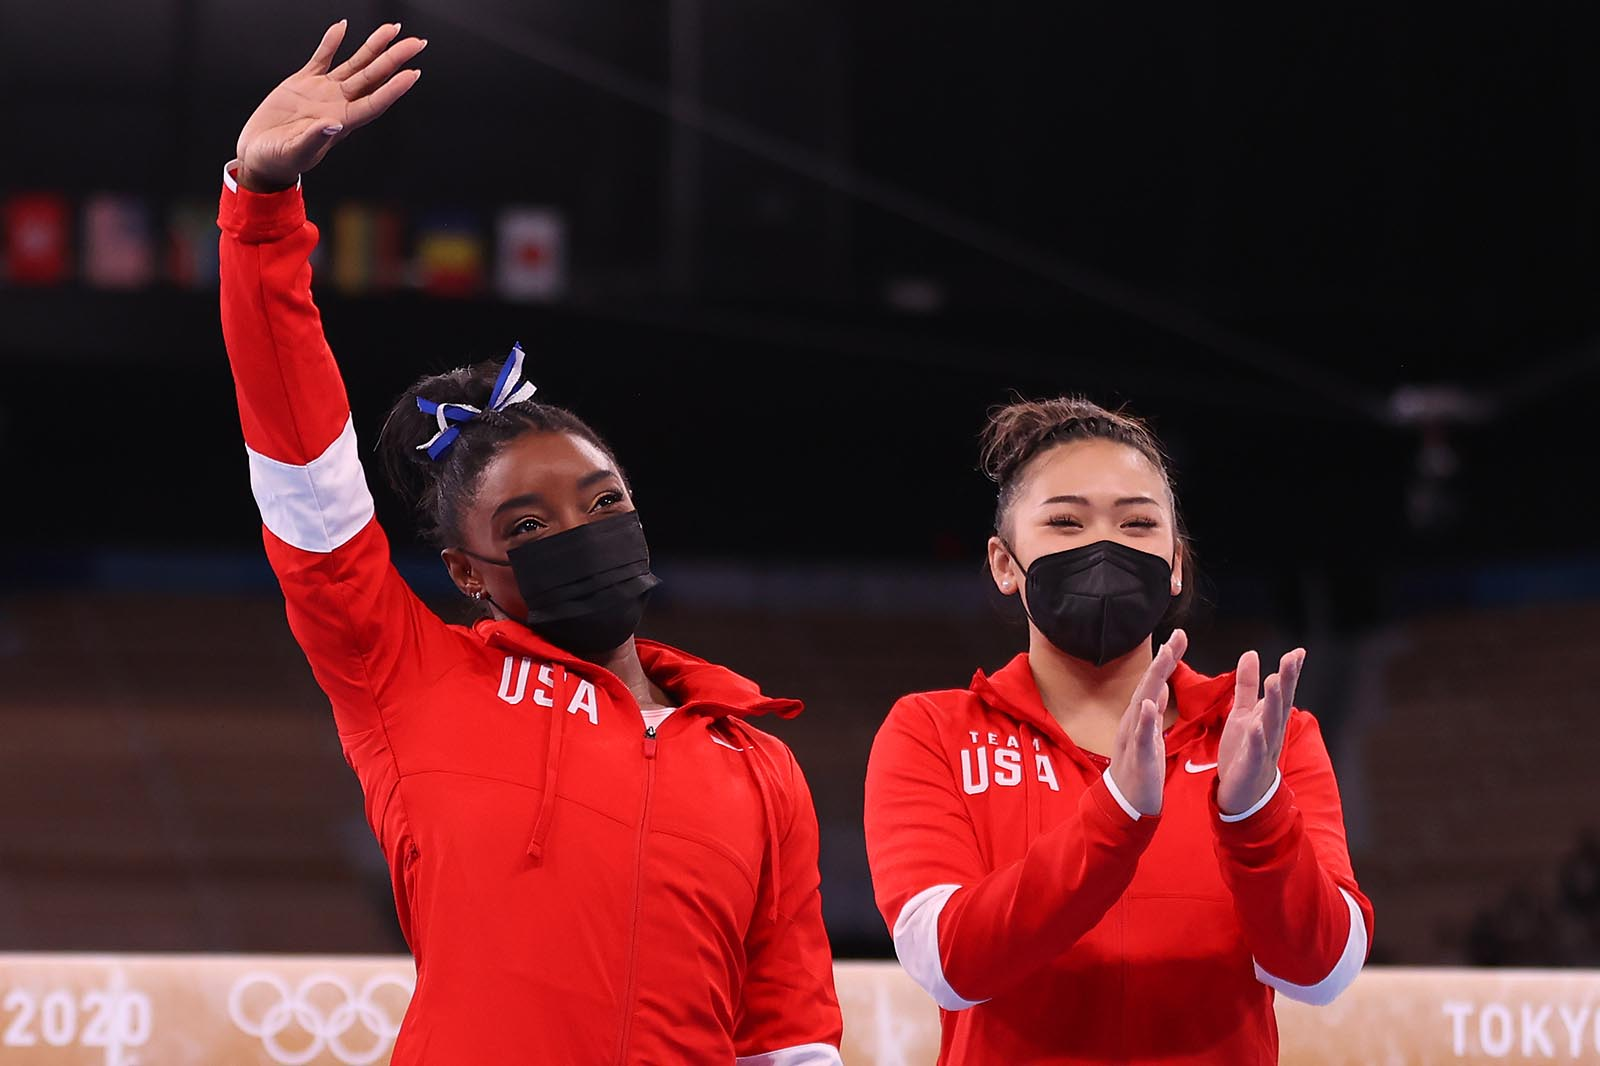 Simone Biles acknowledges the crowd, alongside teammate Sunisa Lee, prior to the women's balance beam final on August 3.